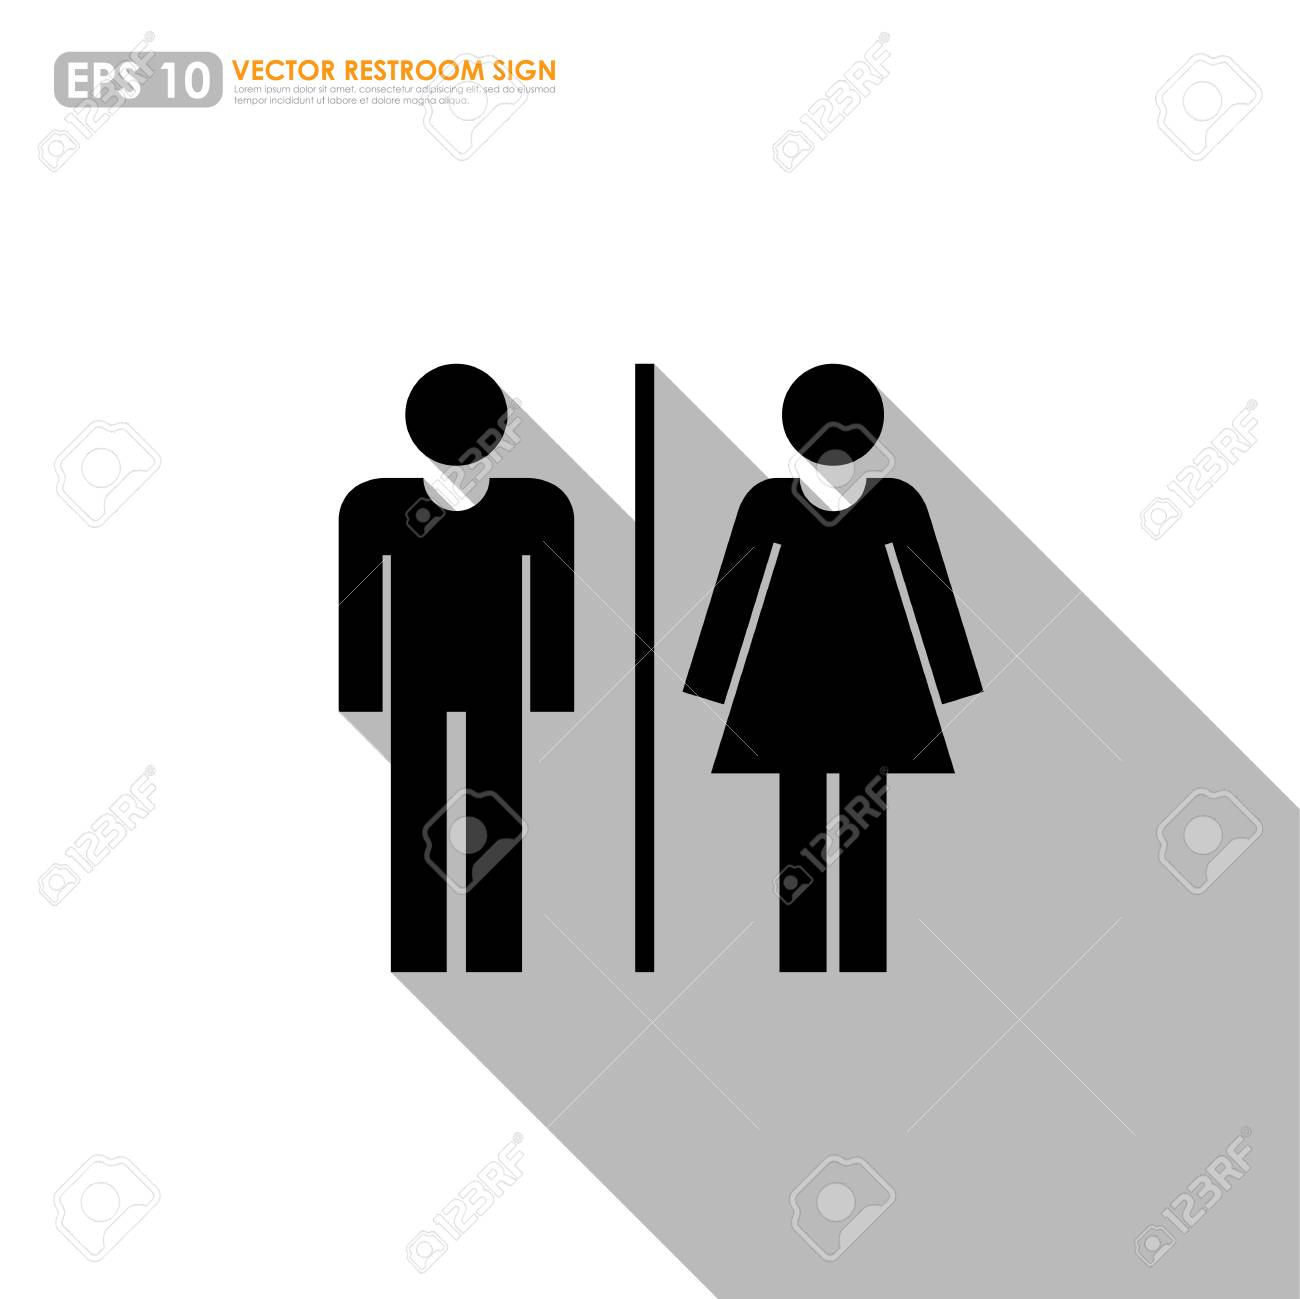 Wc Oder Toilette Stock Photo